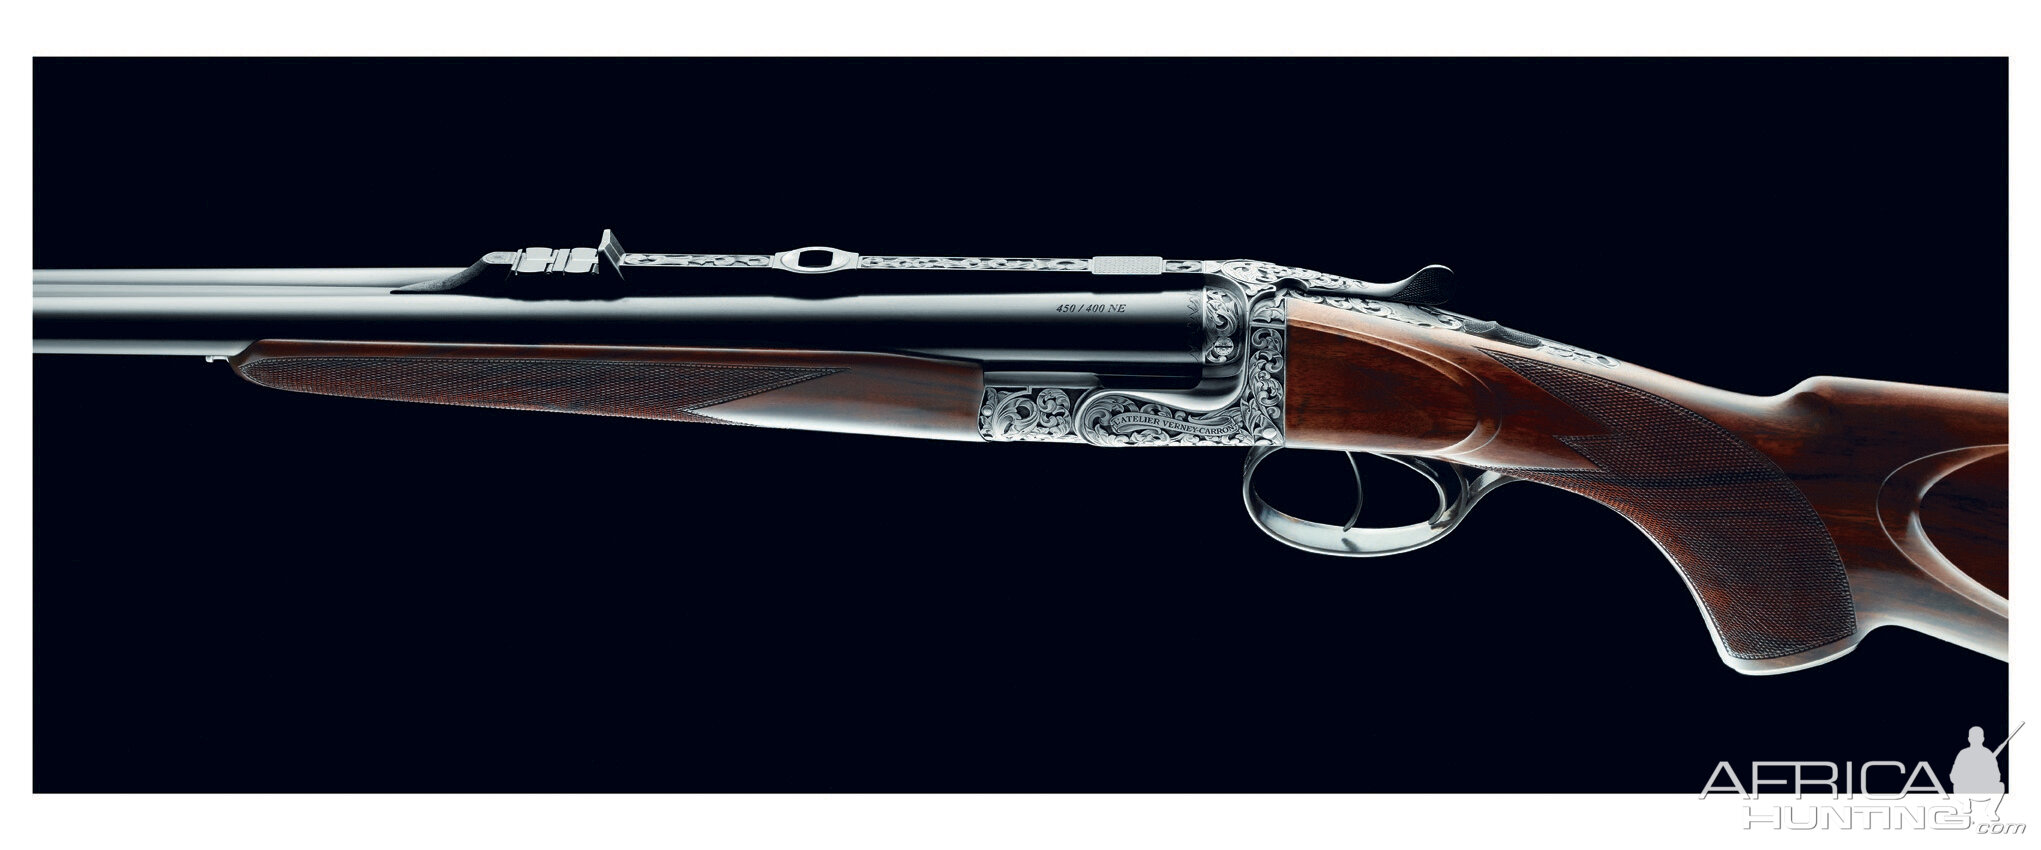 Tailor-made 450/400 Nitro Express Double Rifle from L'Atelier Verney-Carron